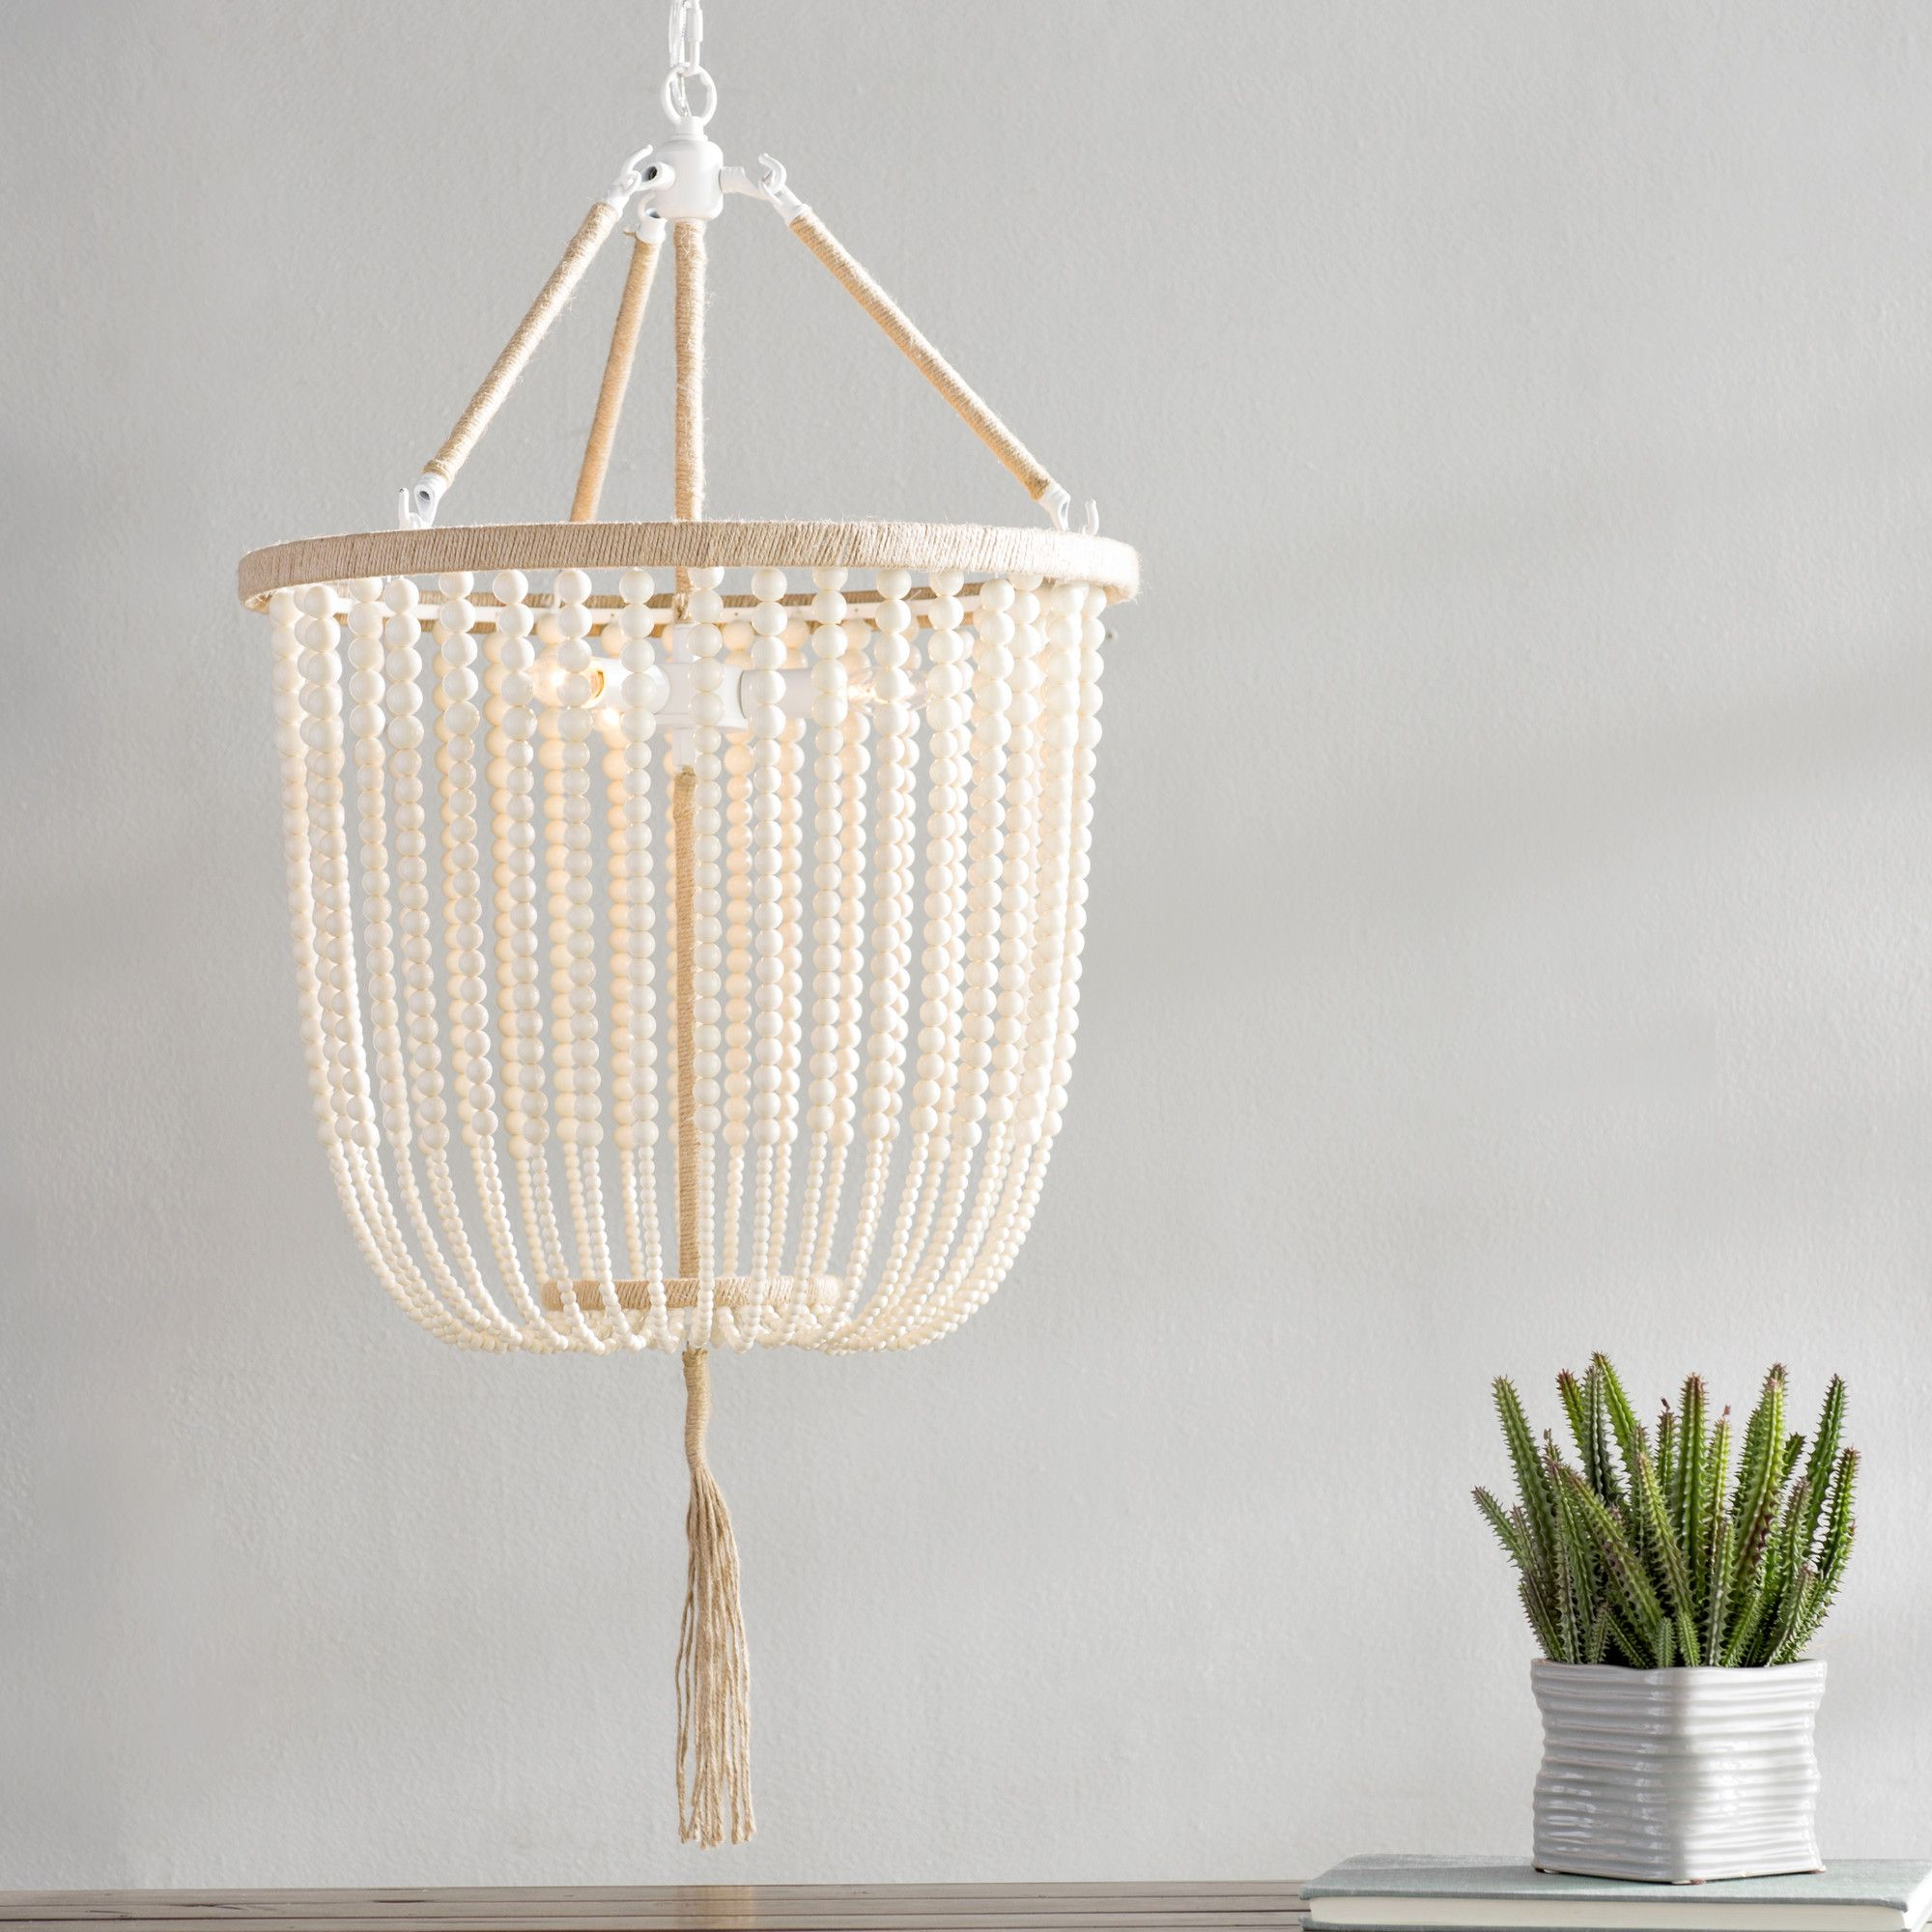 Giselle light foyer pendant products pinterest products